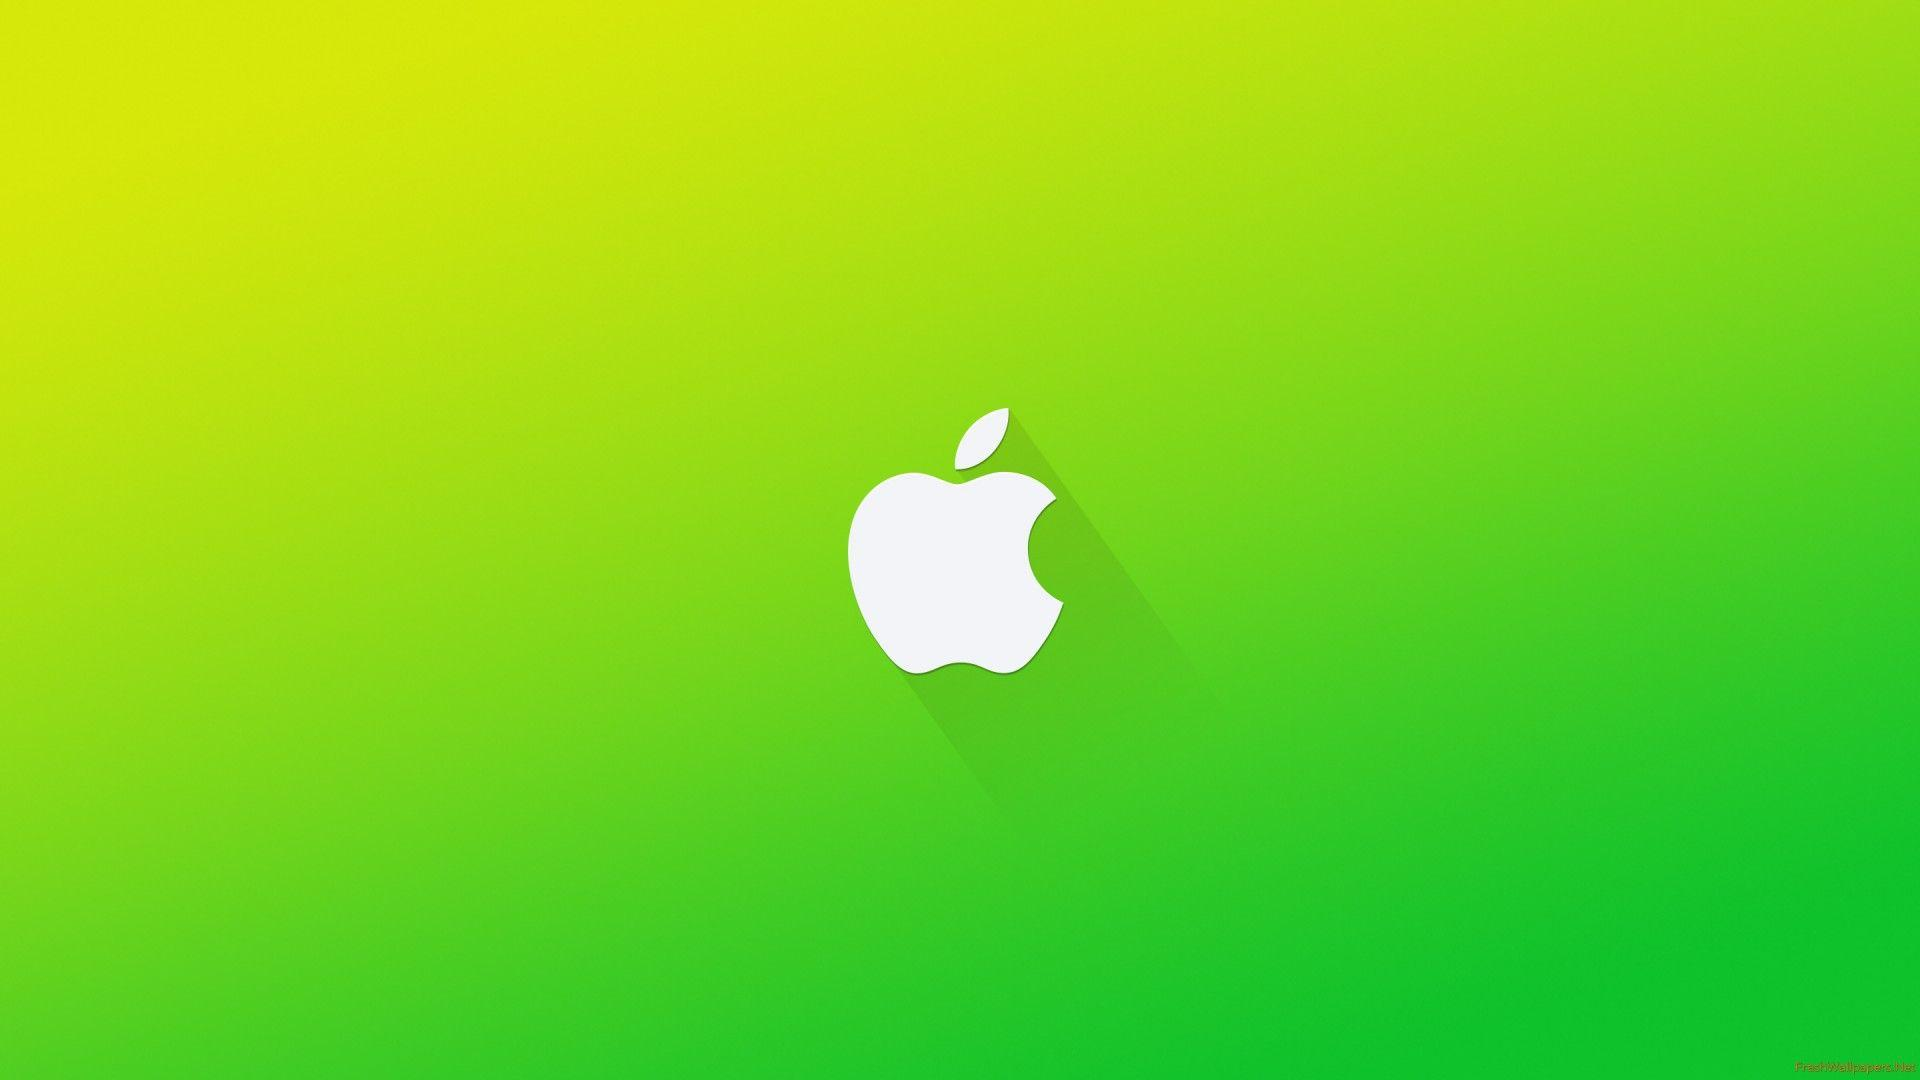 Apple Logo wallpapers